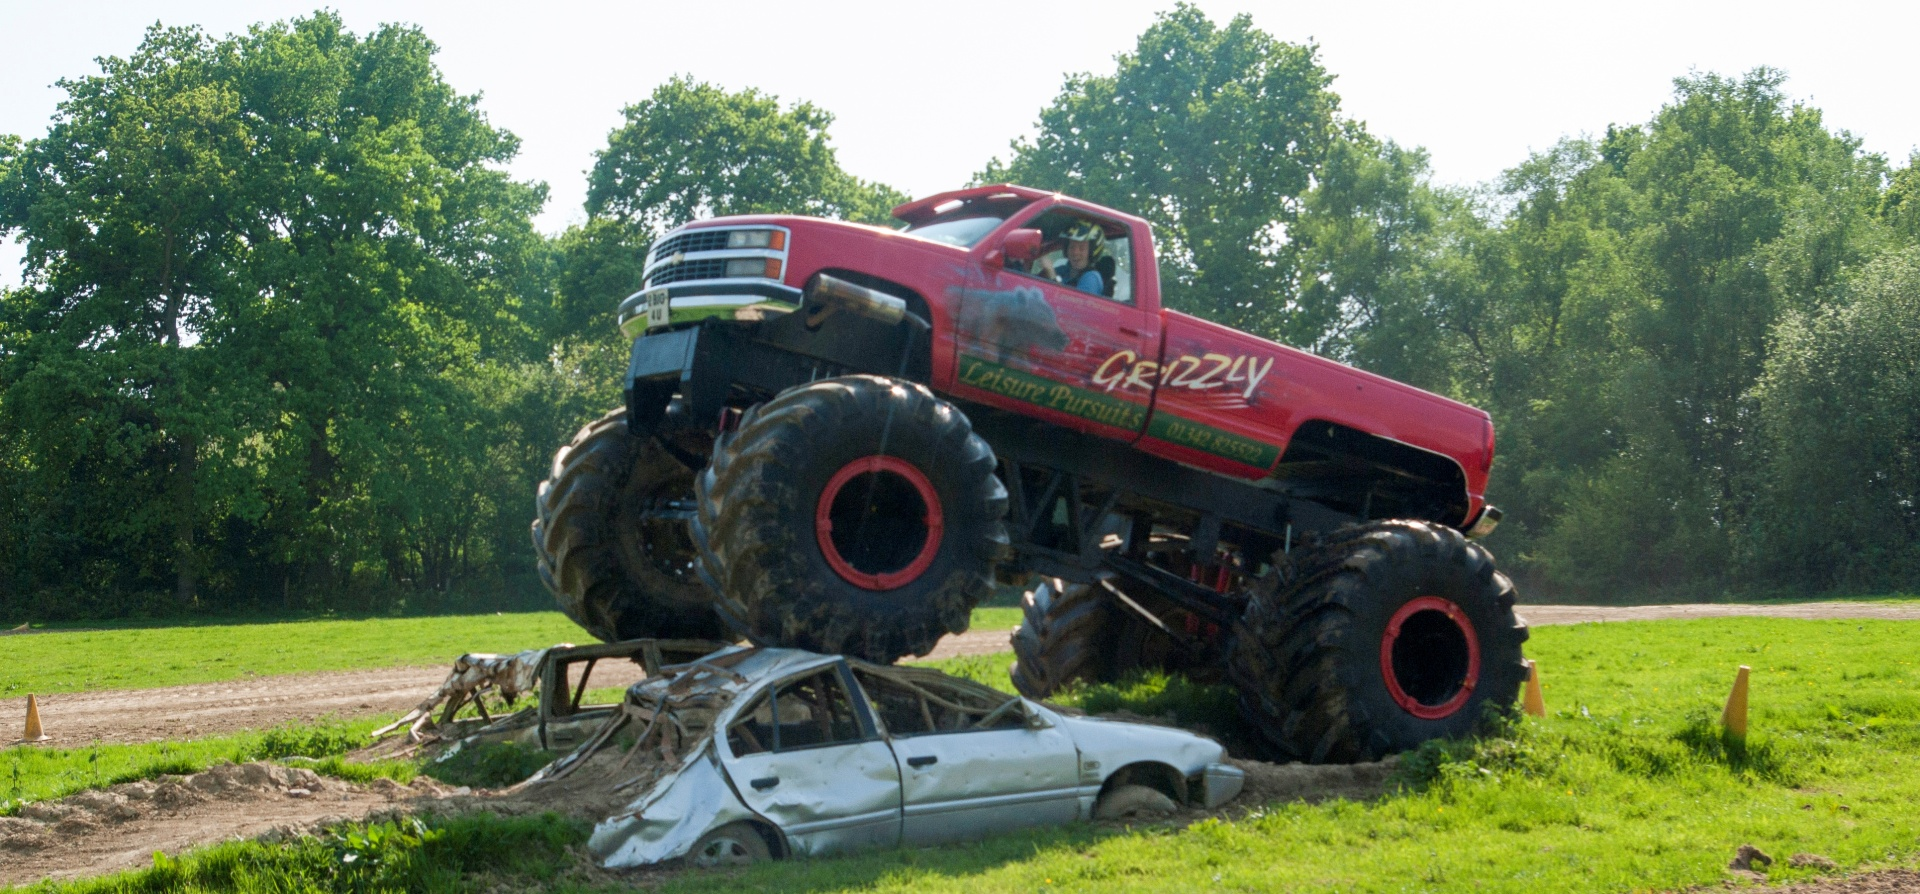 Maxi Monster Truck Experience